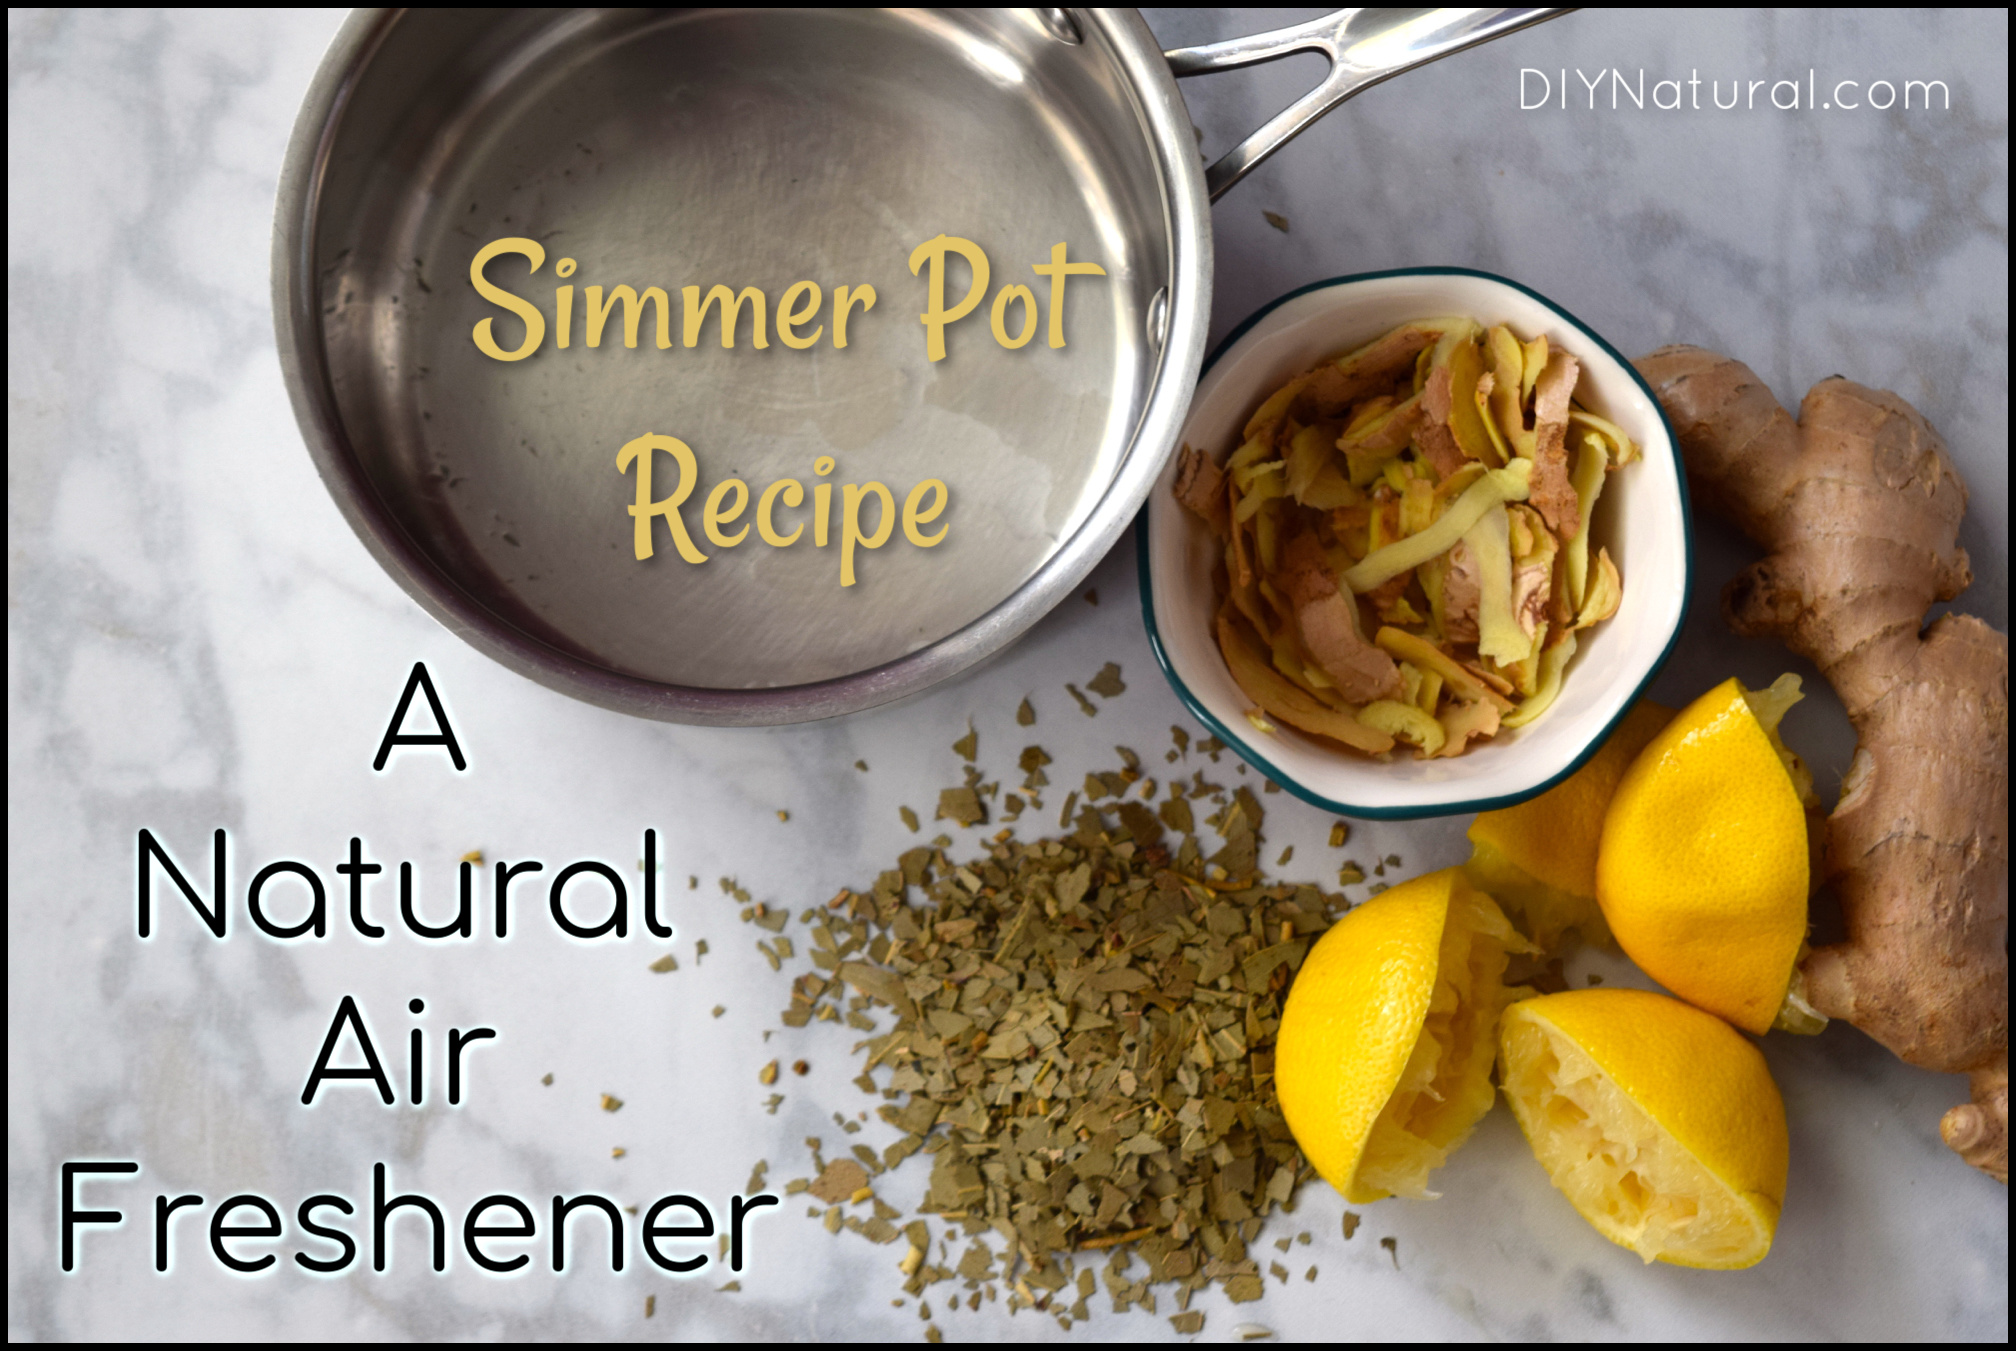 A Refreshing Eucalyptus Simmer Pot Recipe